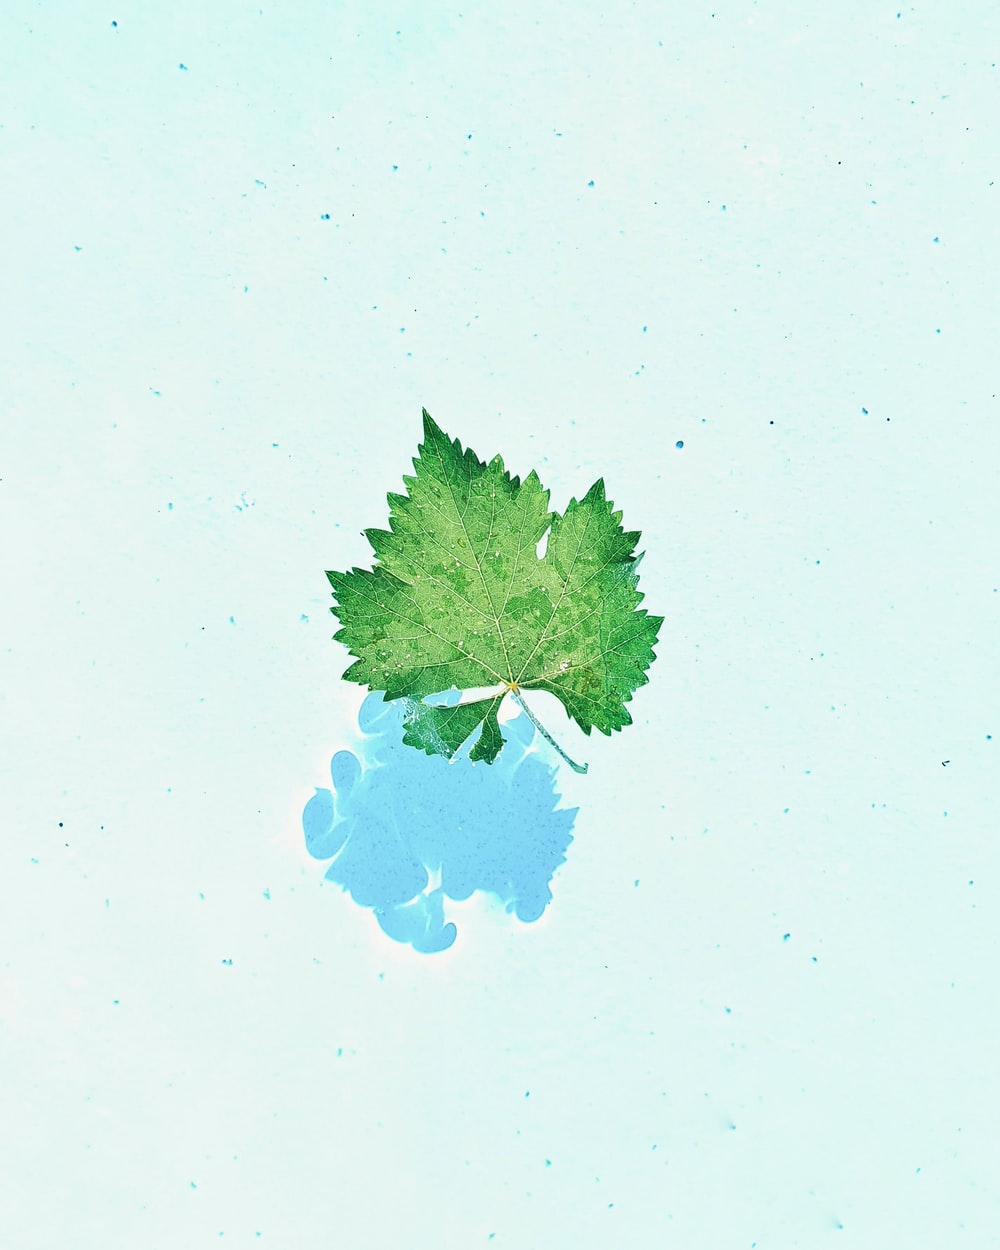 green and blue tree illustration